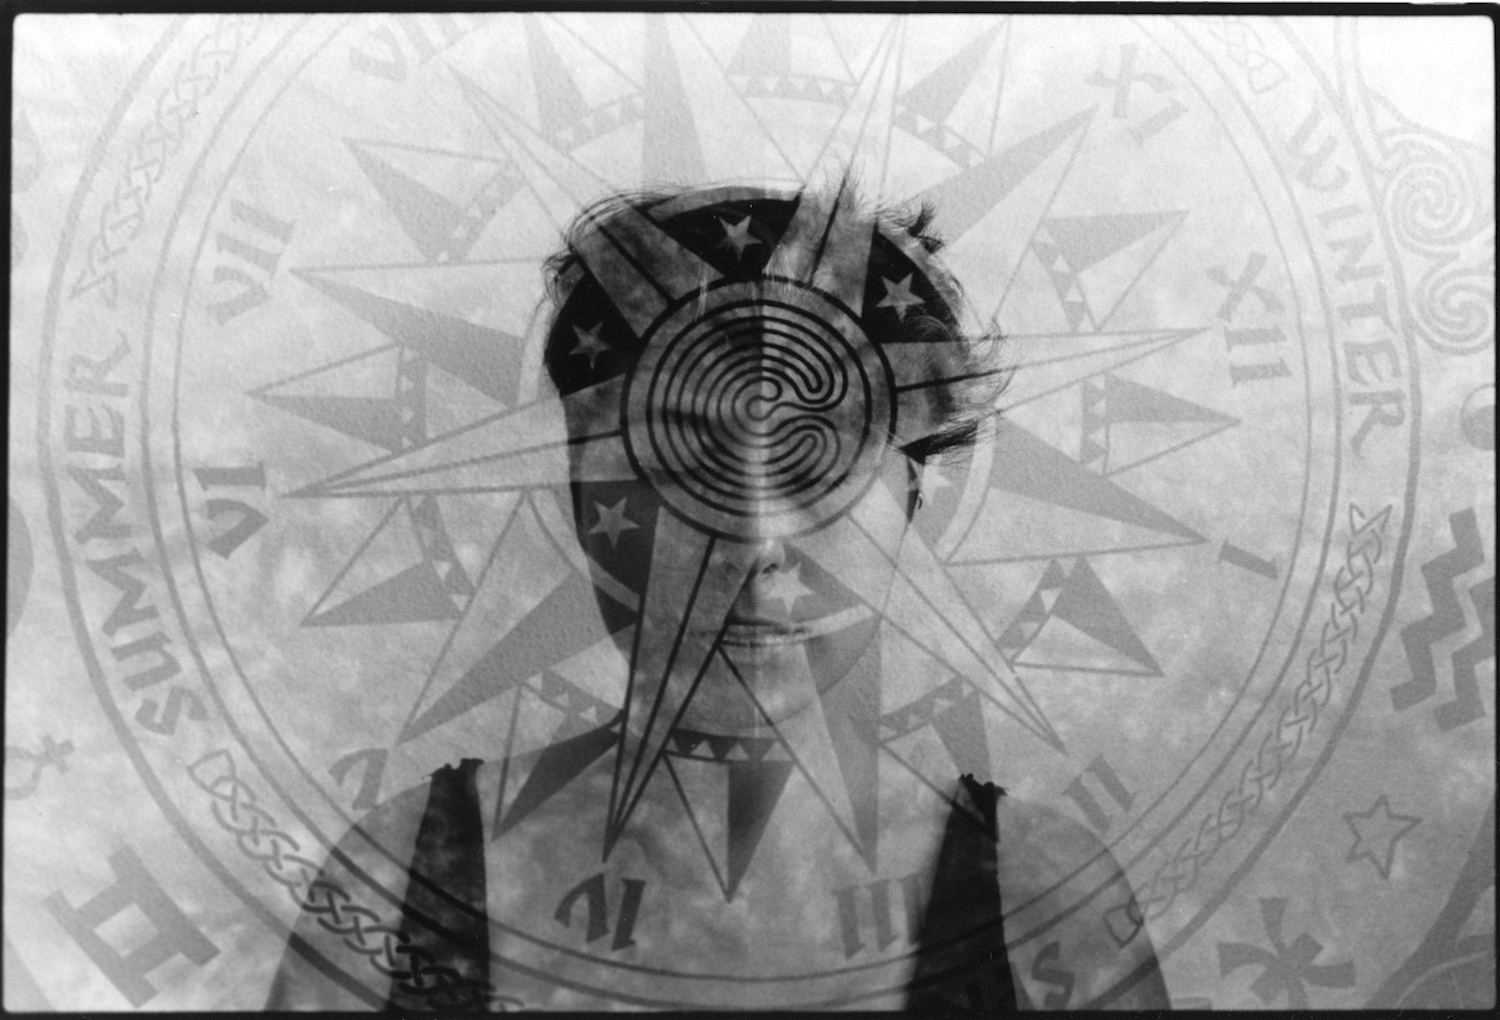 Enlightenment, Double Exposure, Silver Gelatin Print